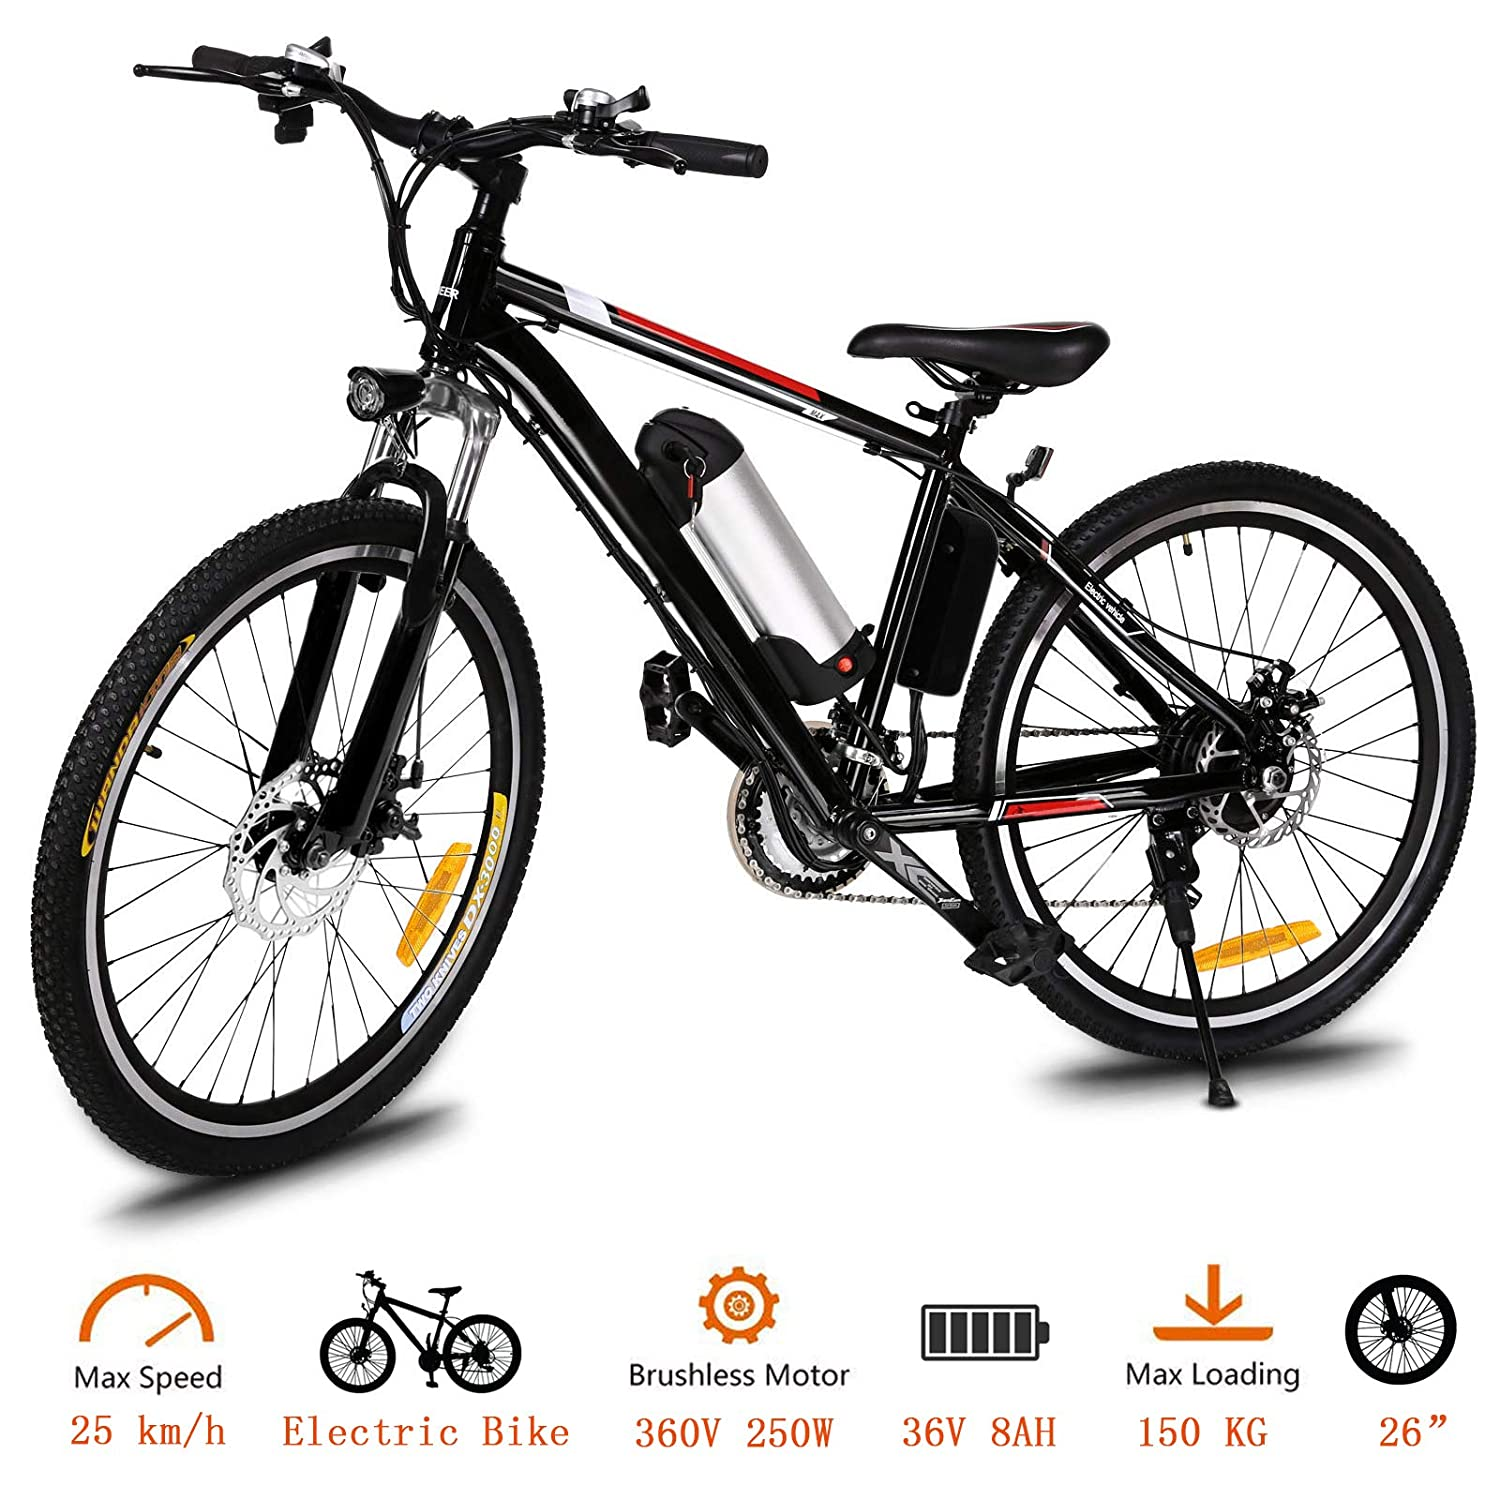 Tomasar Power Electric Bike with Lithium-Ion Battery, 26 inch Wheel Cyclocross Bike (US Stock)